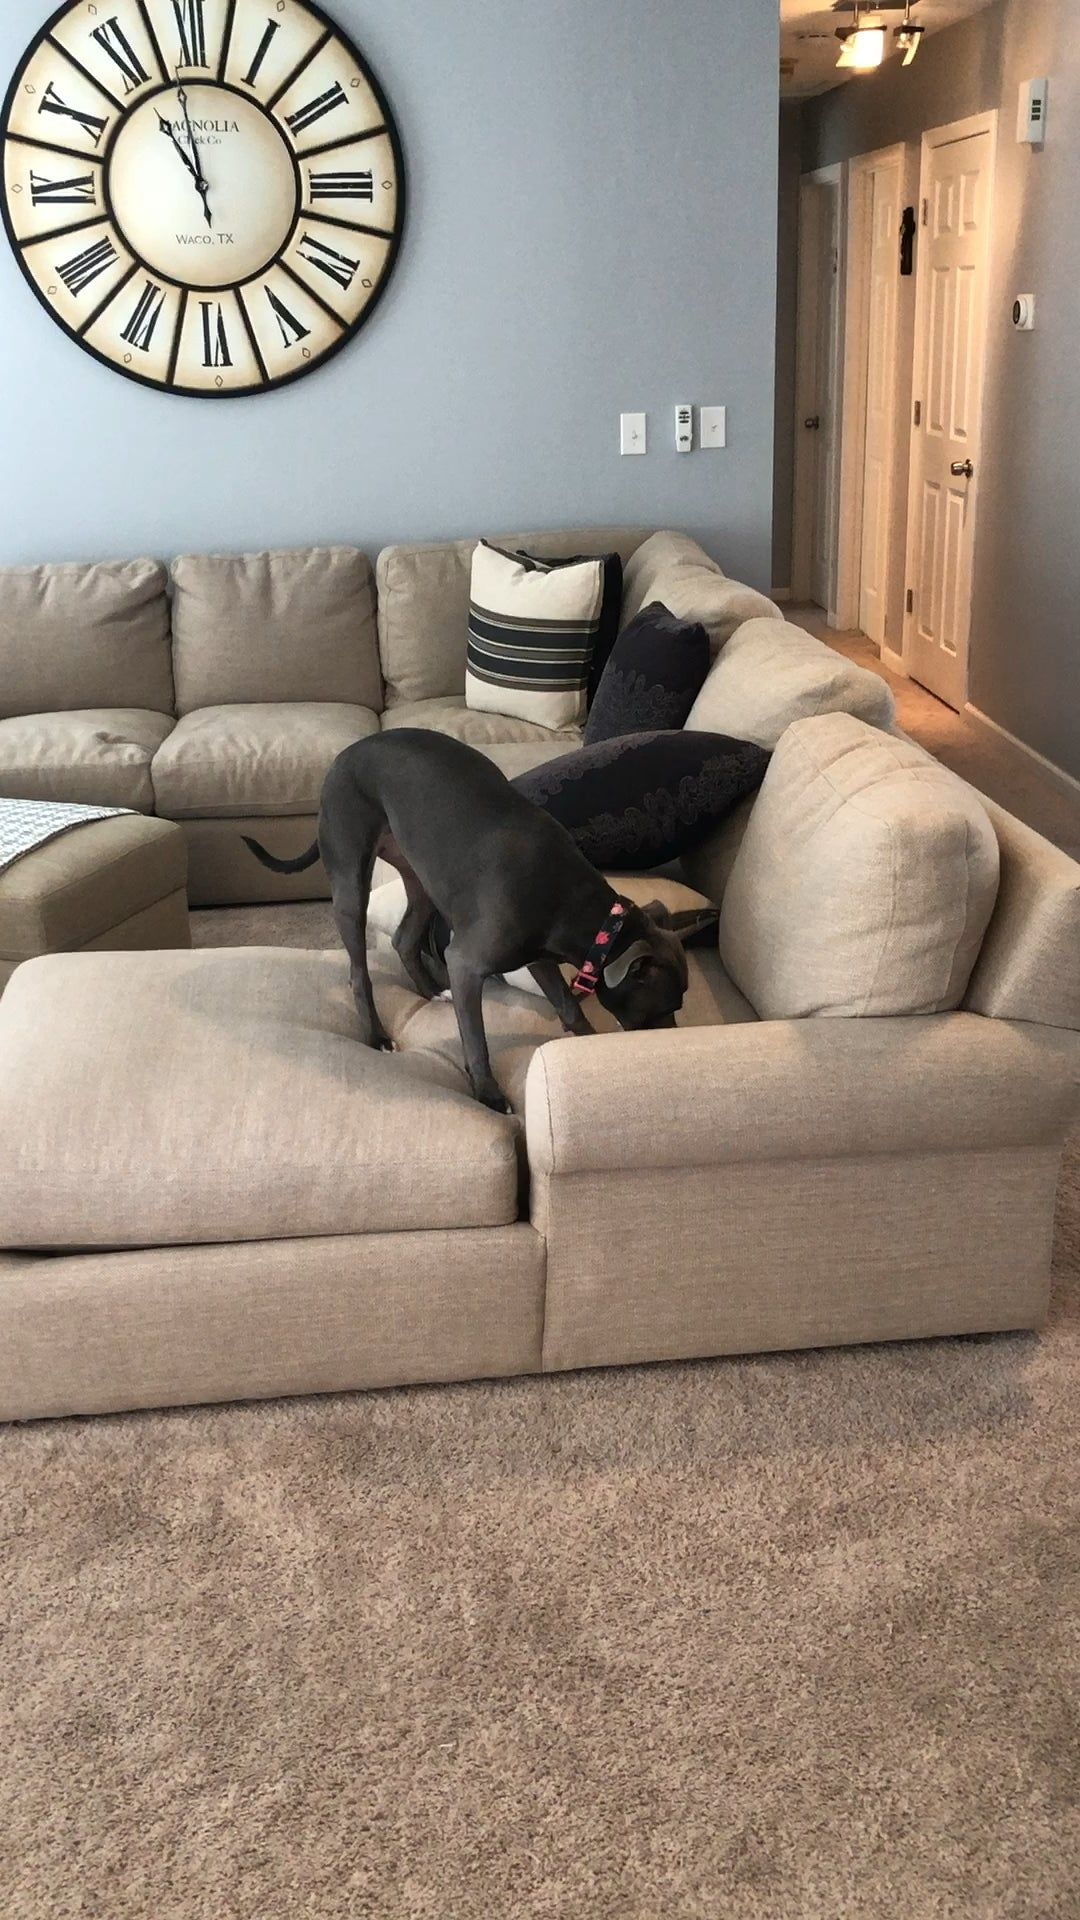 Dog Buried Bone In Couch With Imaginary Dirt Funny Gifs